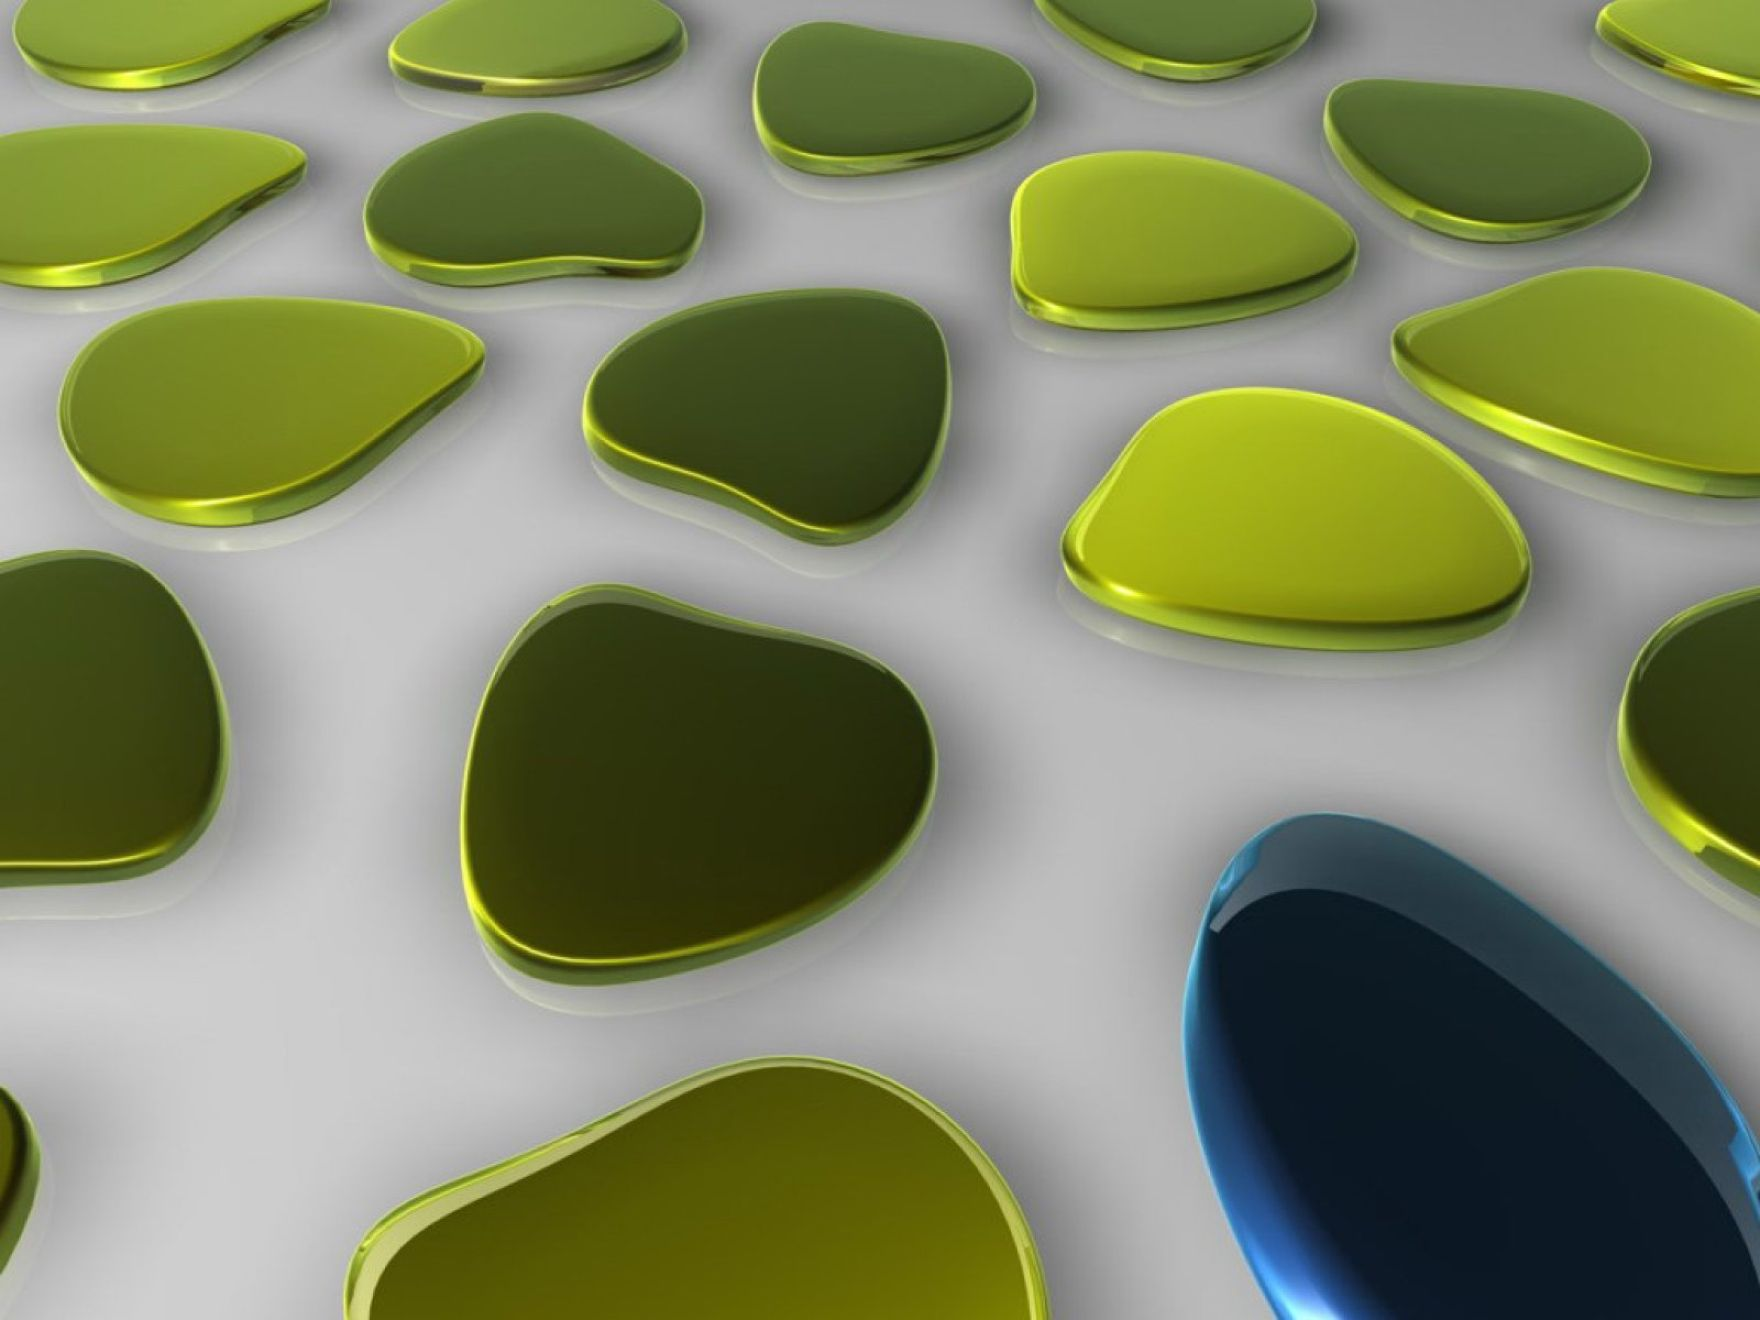 Download free HD 3D Green Blobs Art Desktop Wallpaper, image